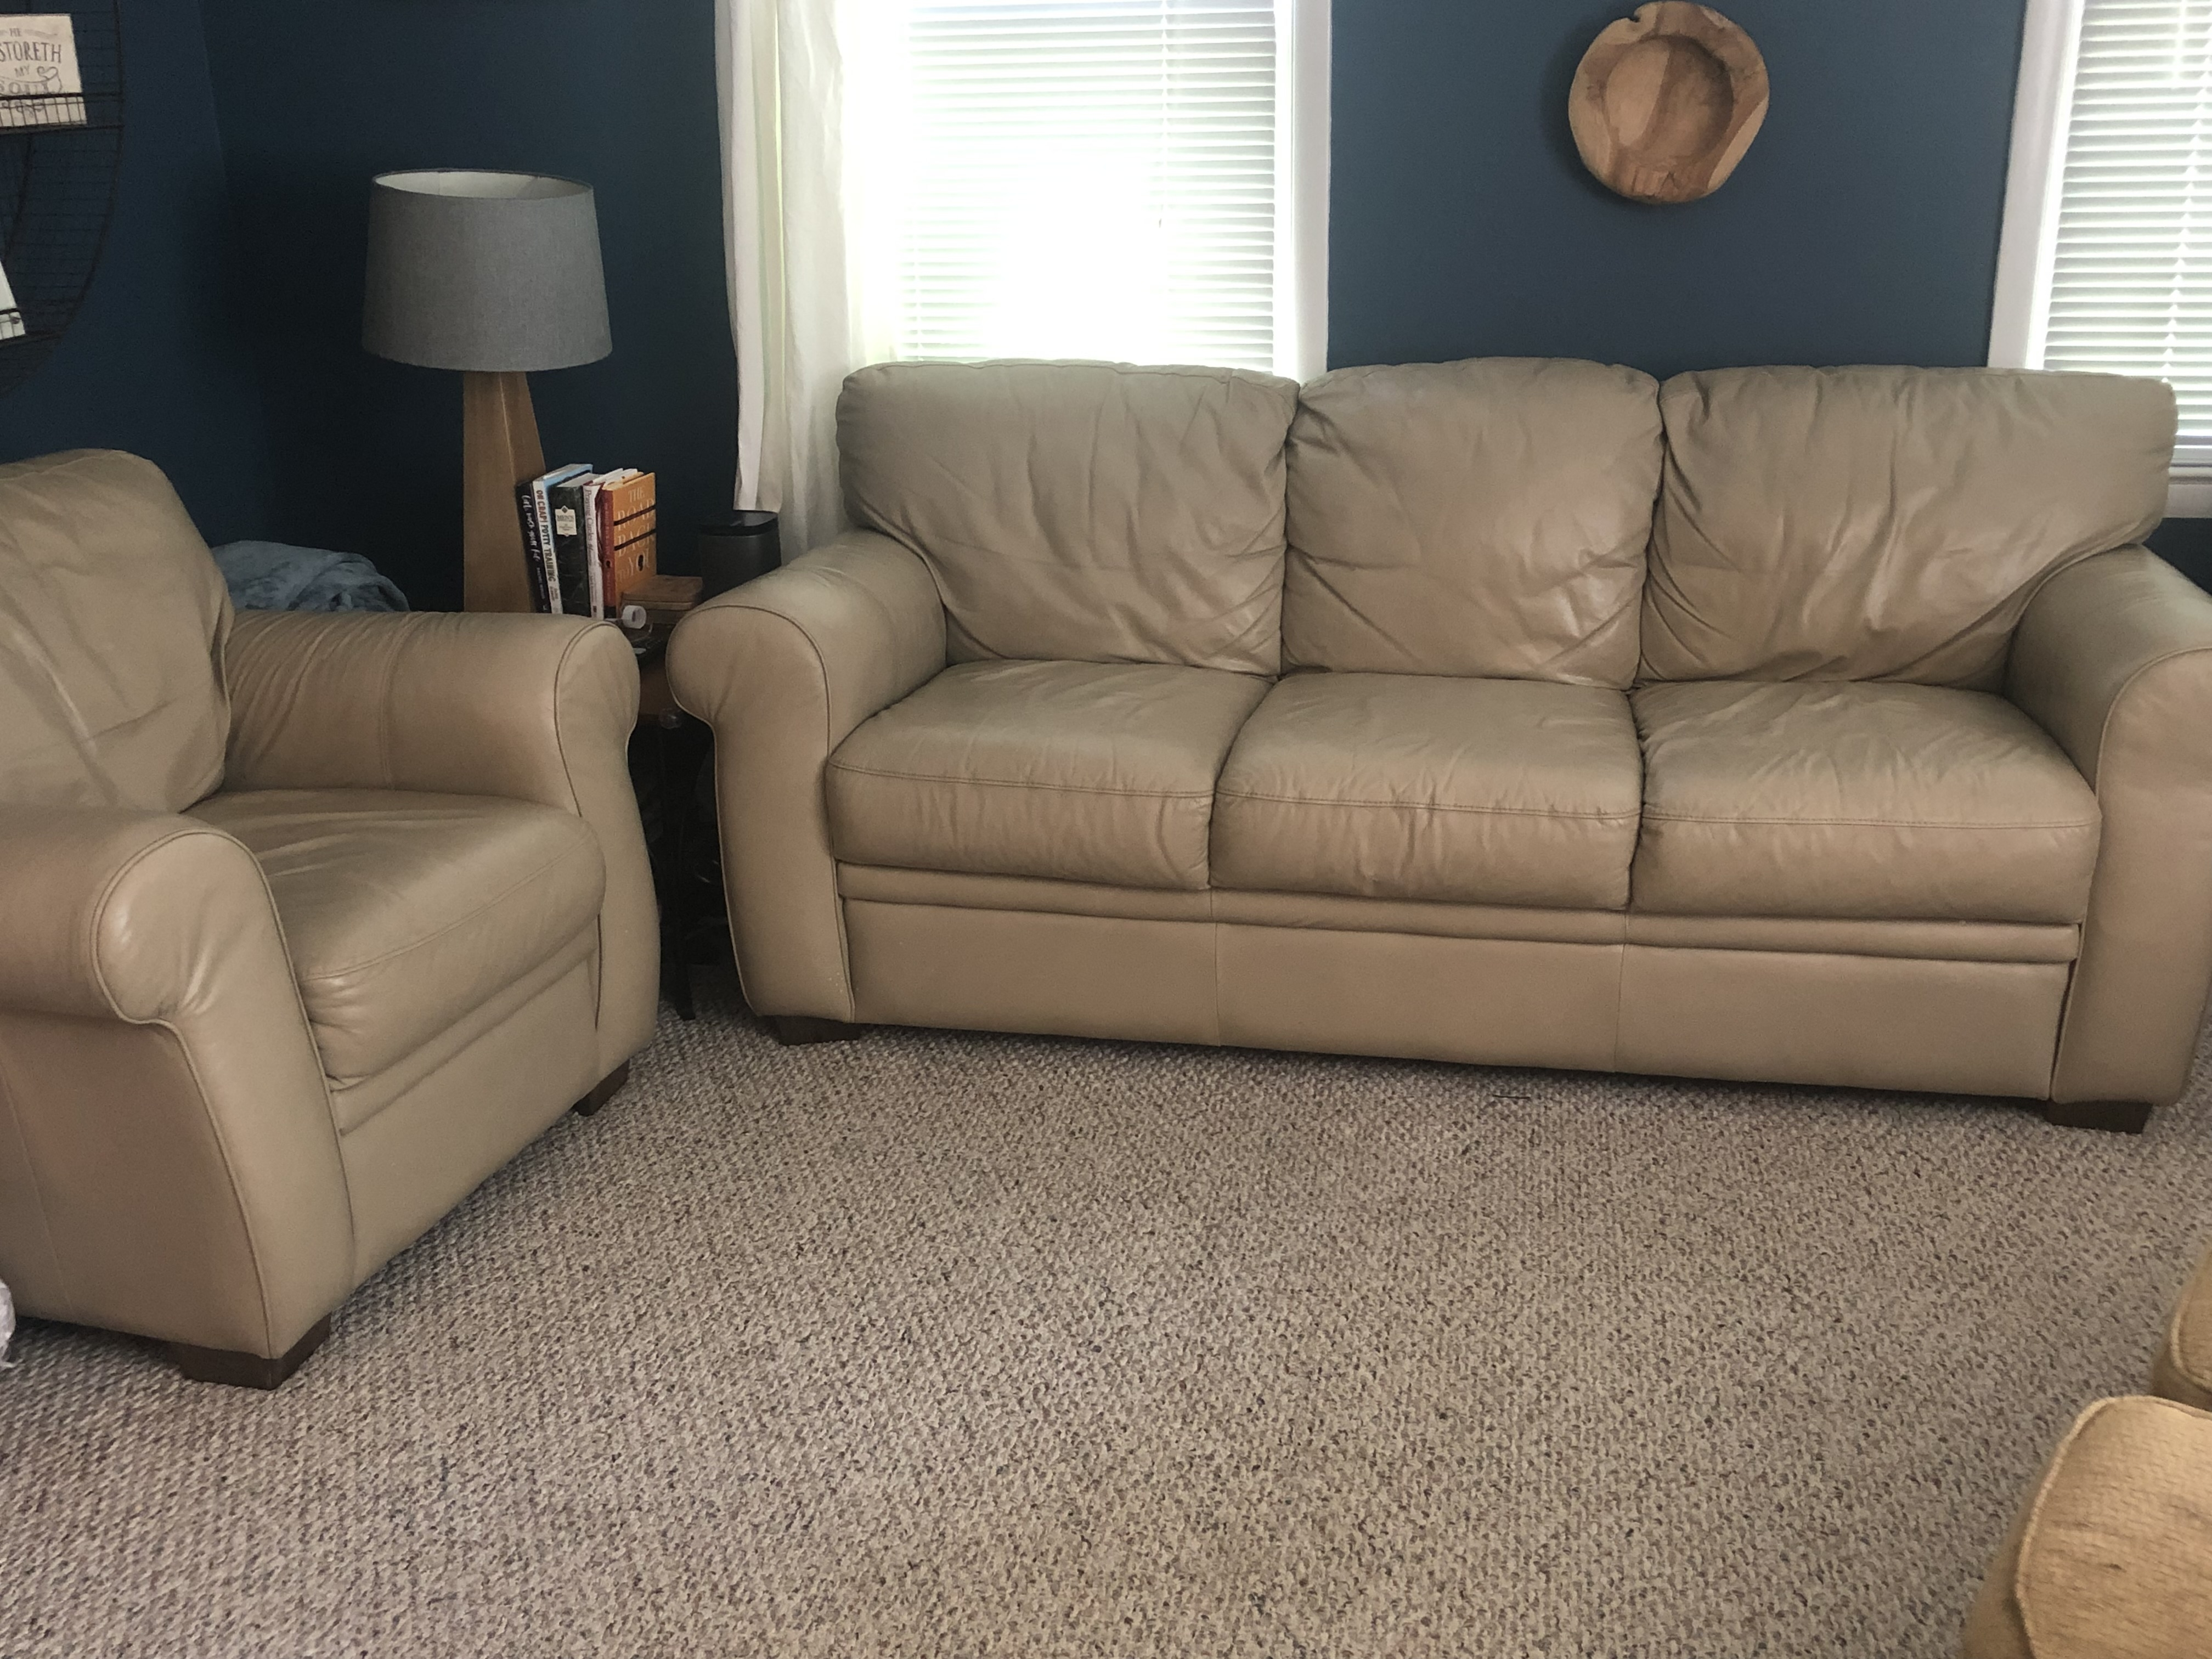 Tan Leather Couch Oversized Chair With Ottoman Set 200 Obo Needs To Go By Sunday August 11th Ncc Forum